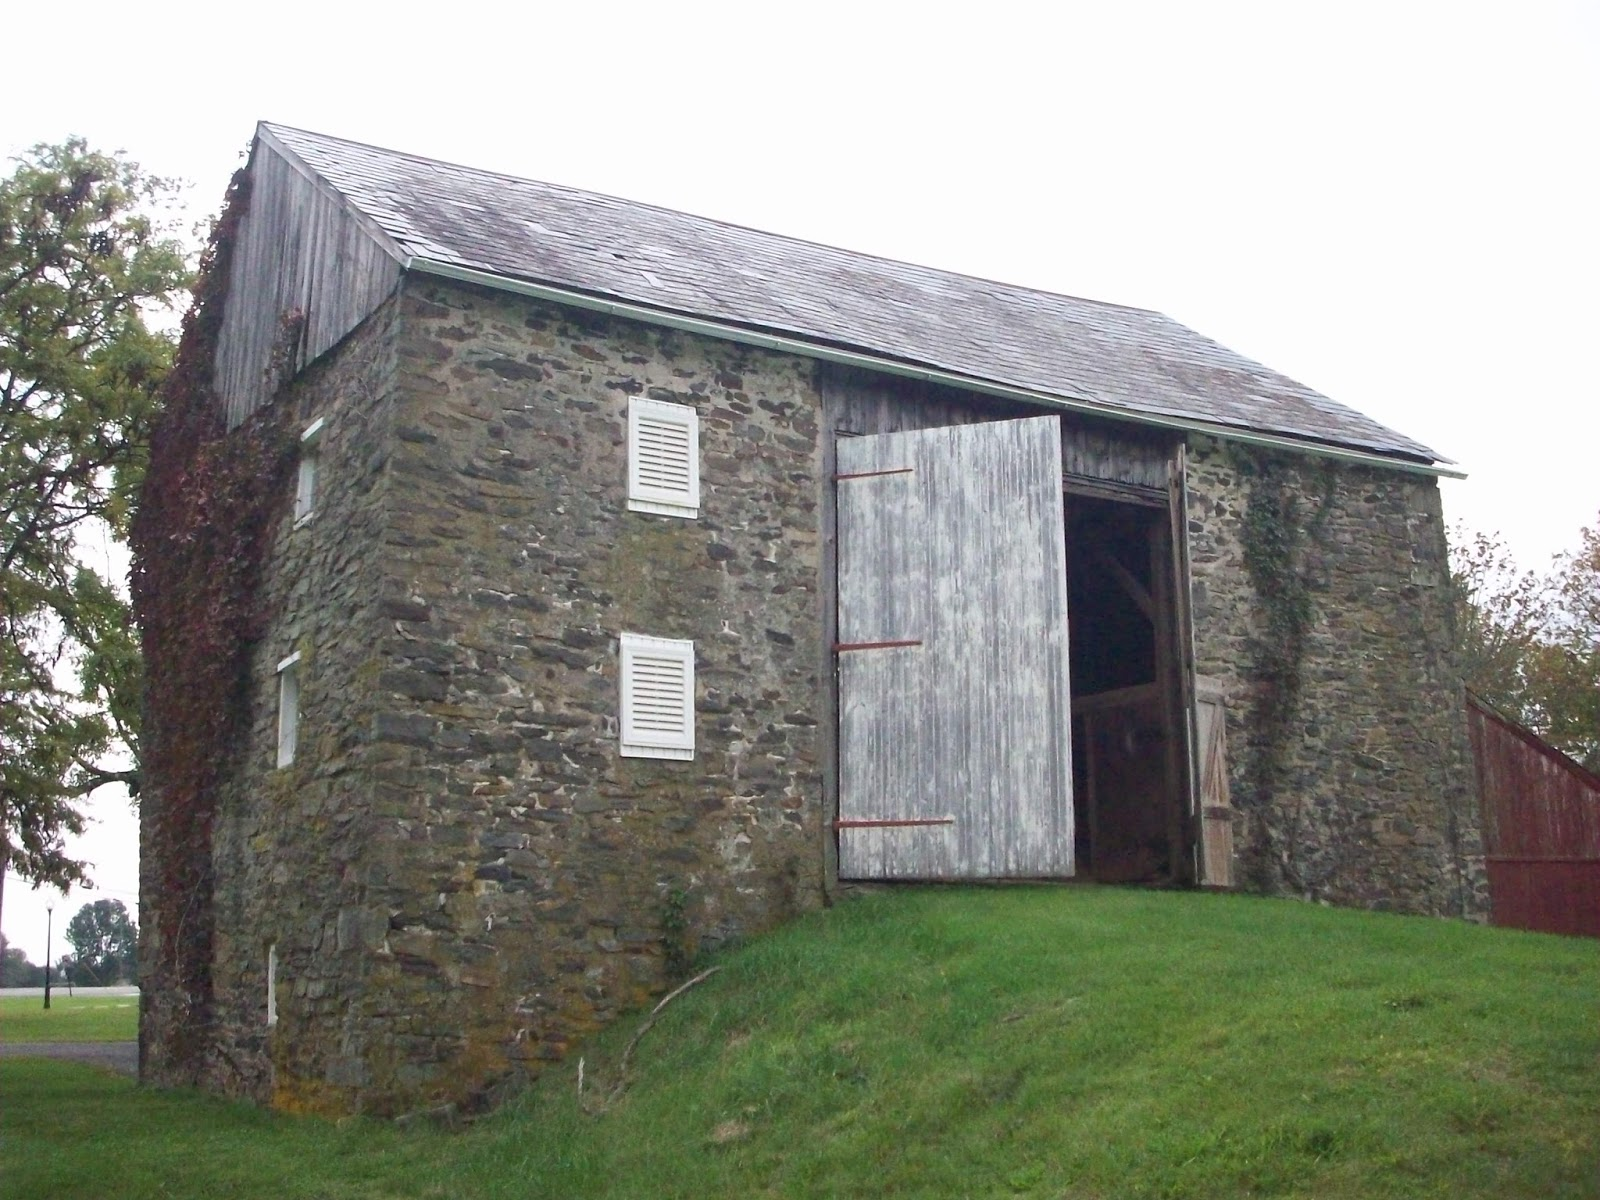 Heroes heroines and history barns in colonial pennsylvania barns in colonial pennsylvania biocorpaavc Images